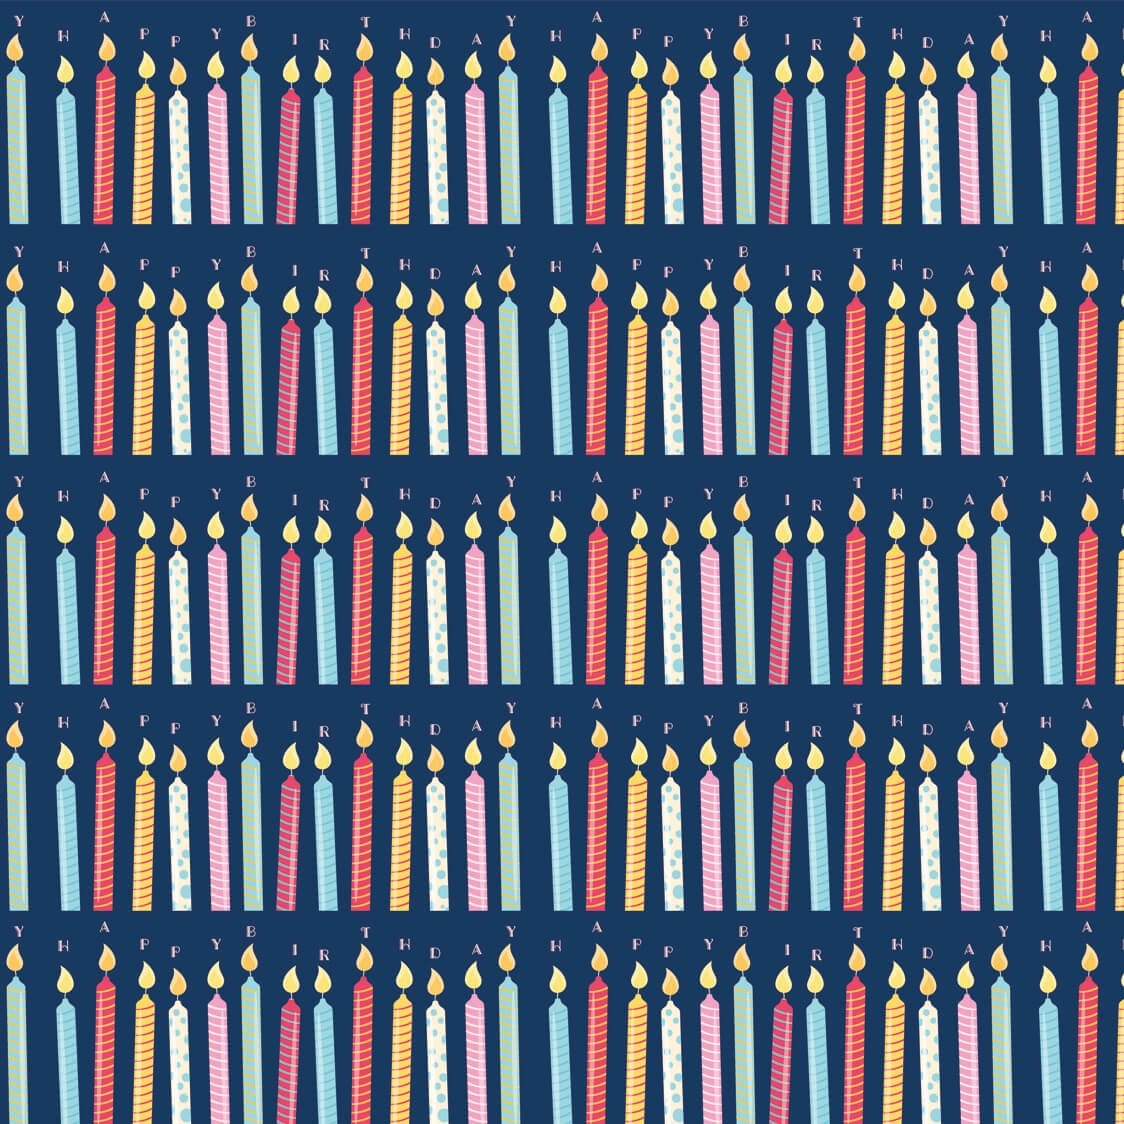 Wrapping Paper - GS assorted designs